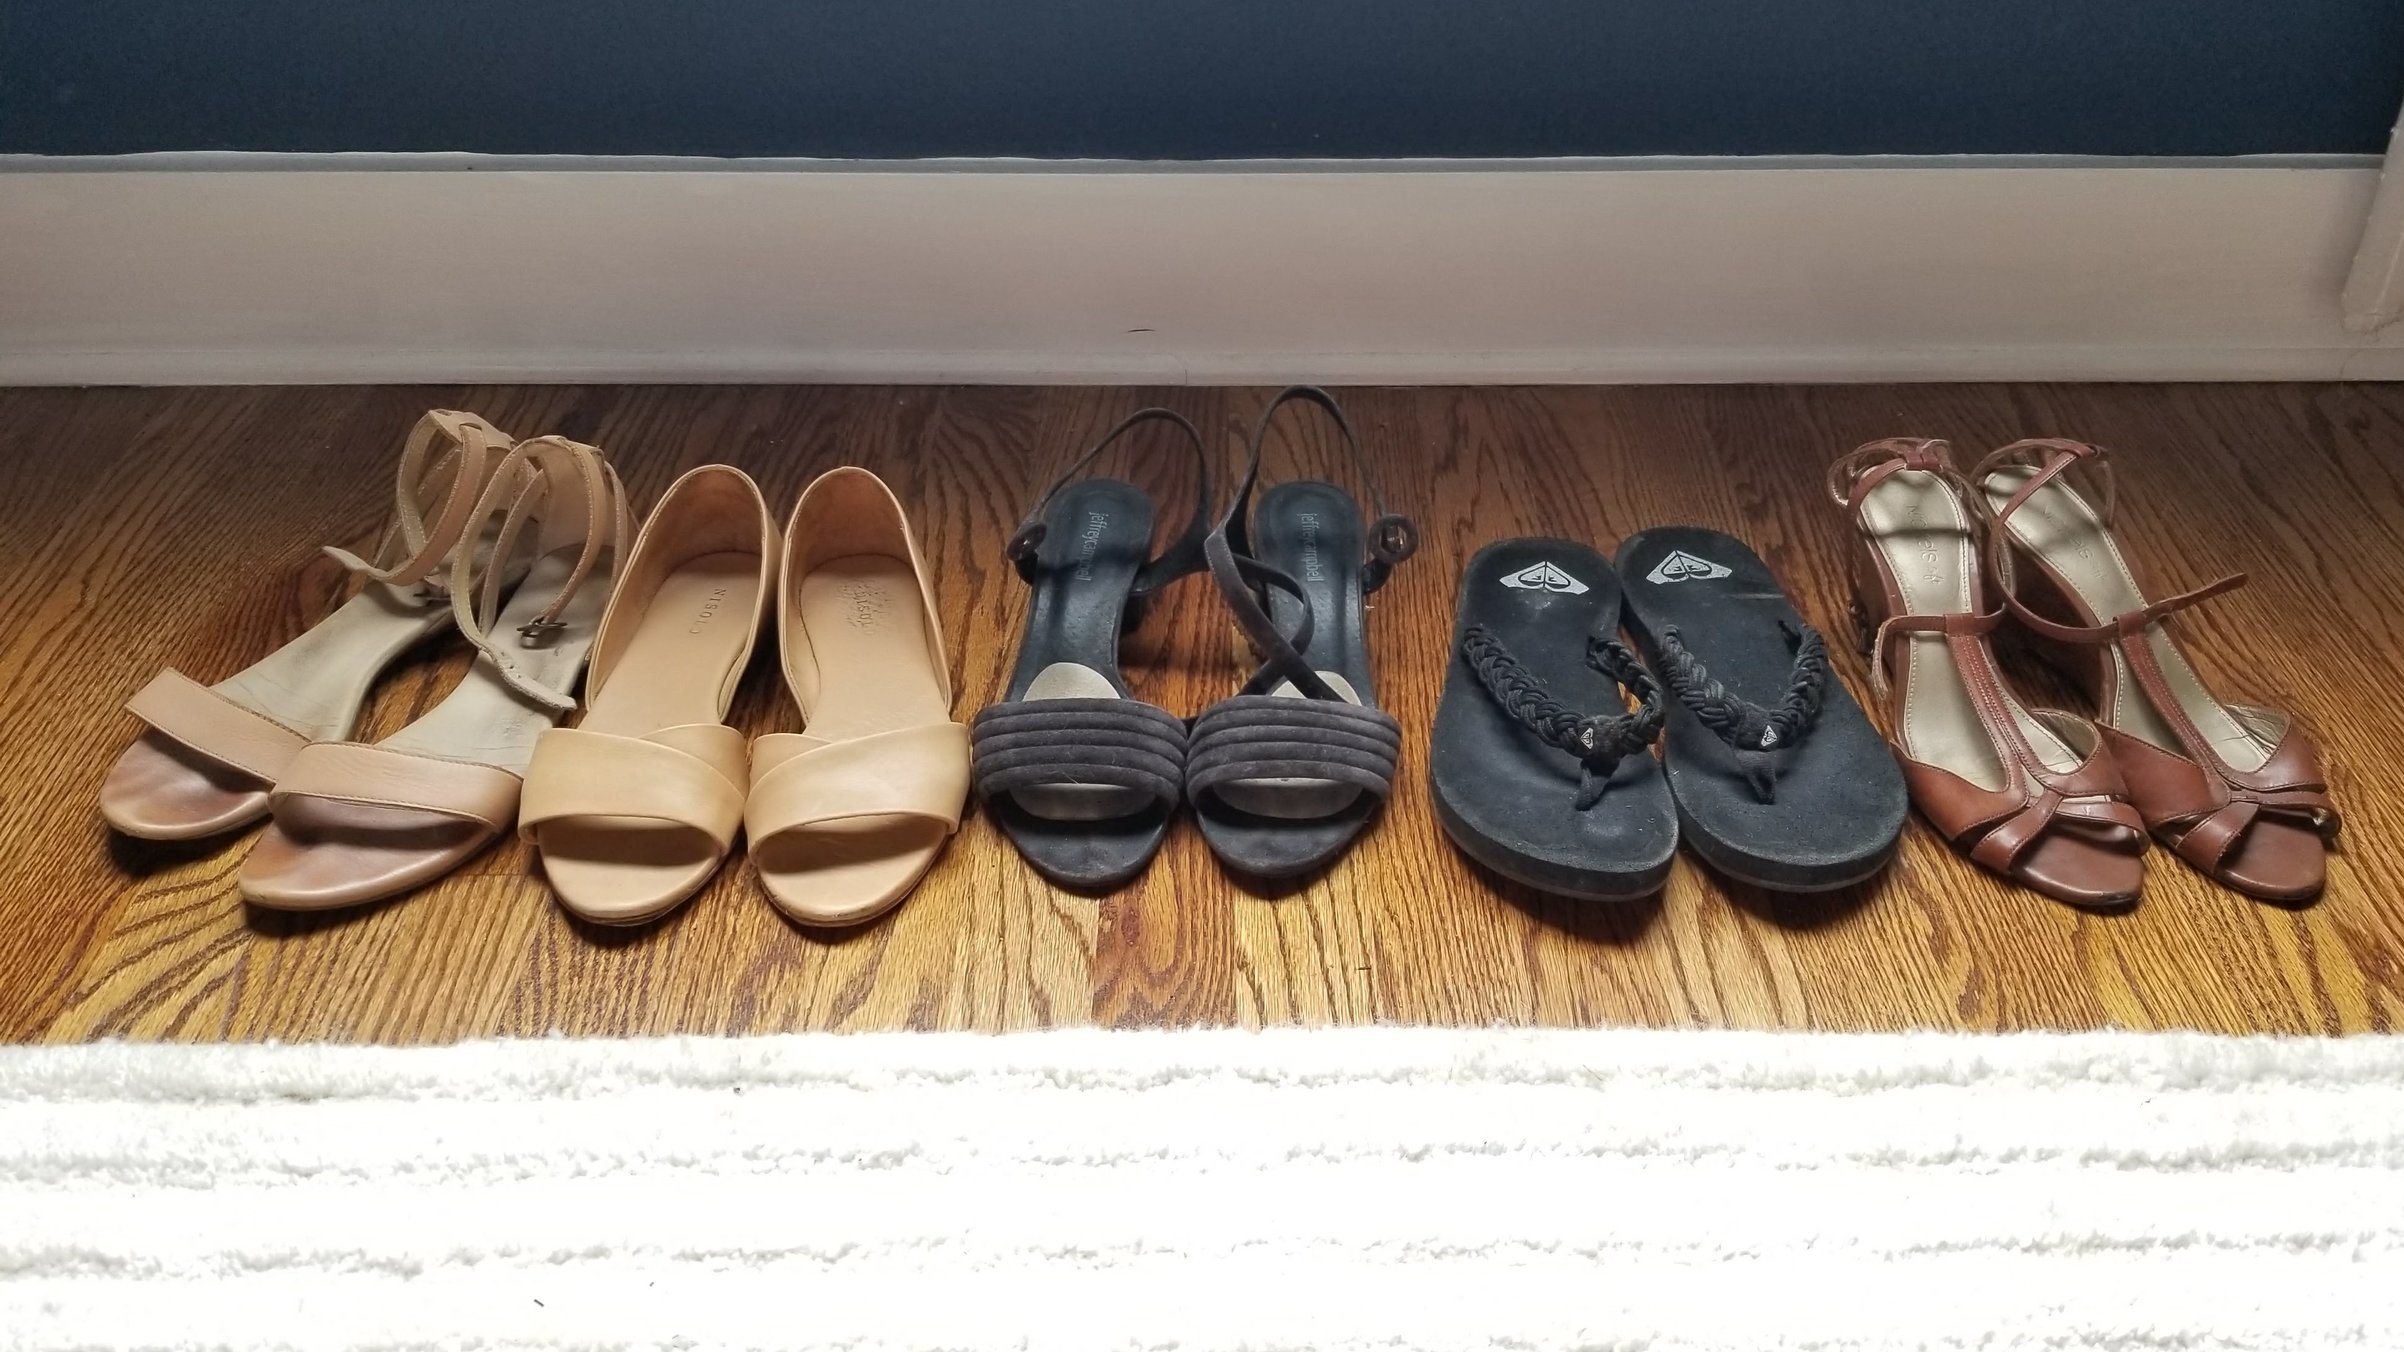 L to R: Nisolo 2-piece ankle straps, Nisolo 2-piece that gives me blisters, suede block heels, flip flops, wedges. Not pictured: wedding shoes (see below).